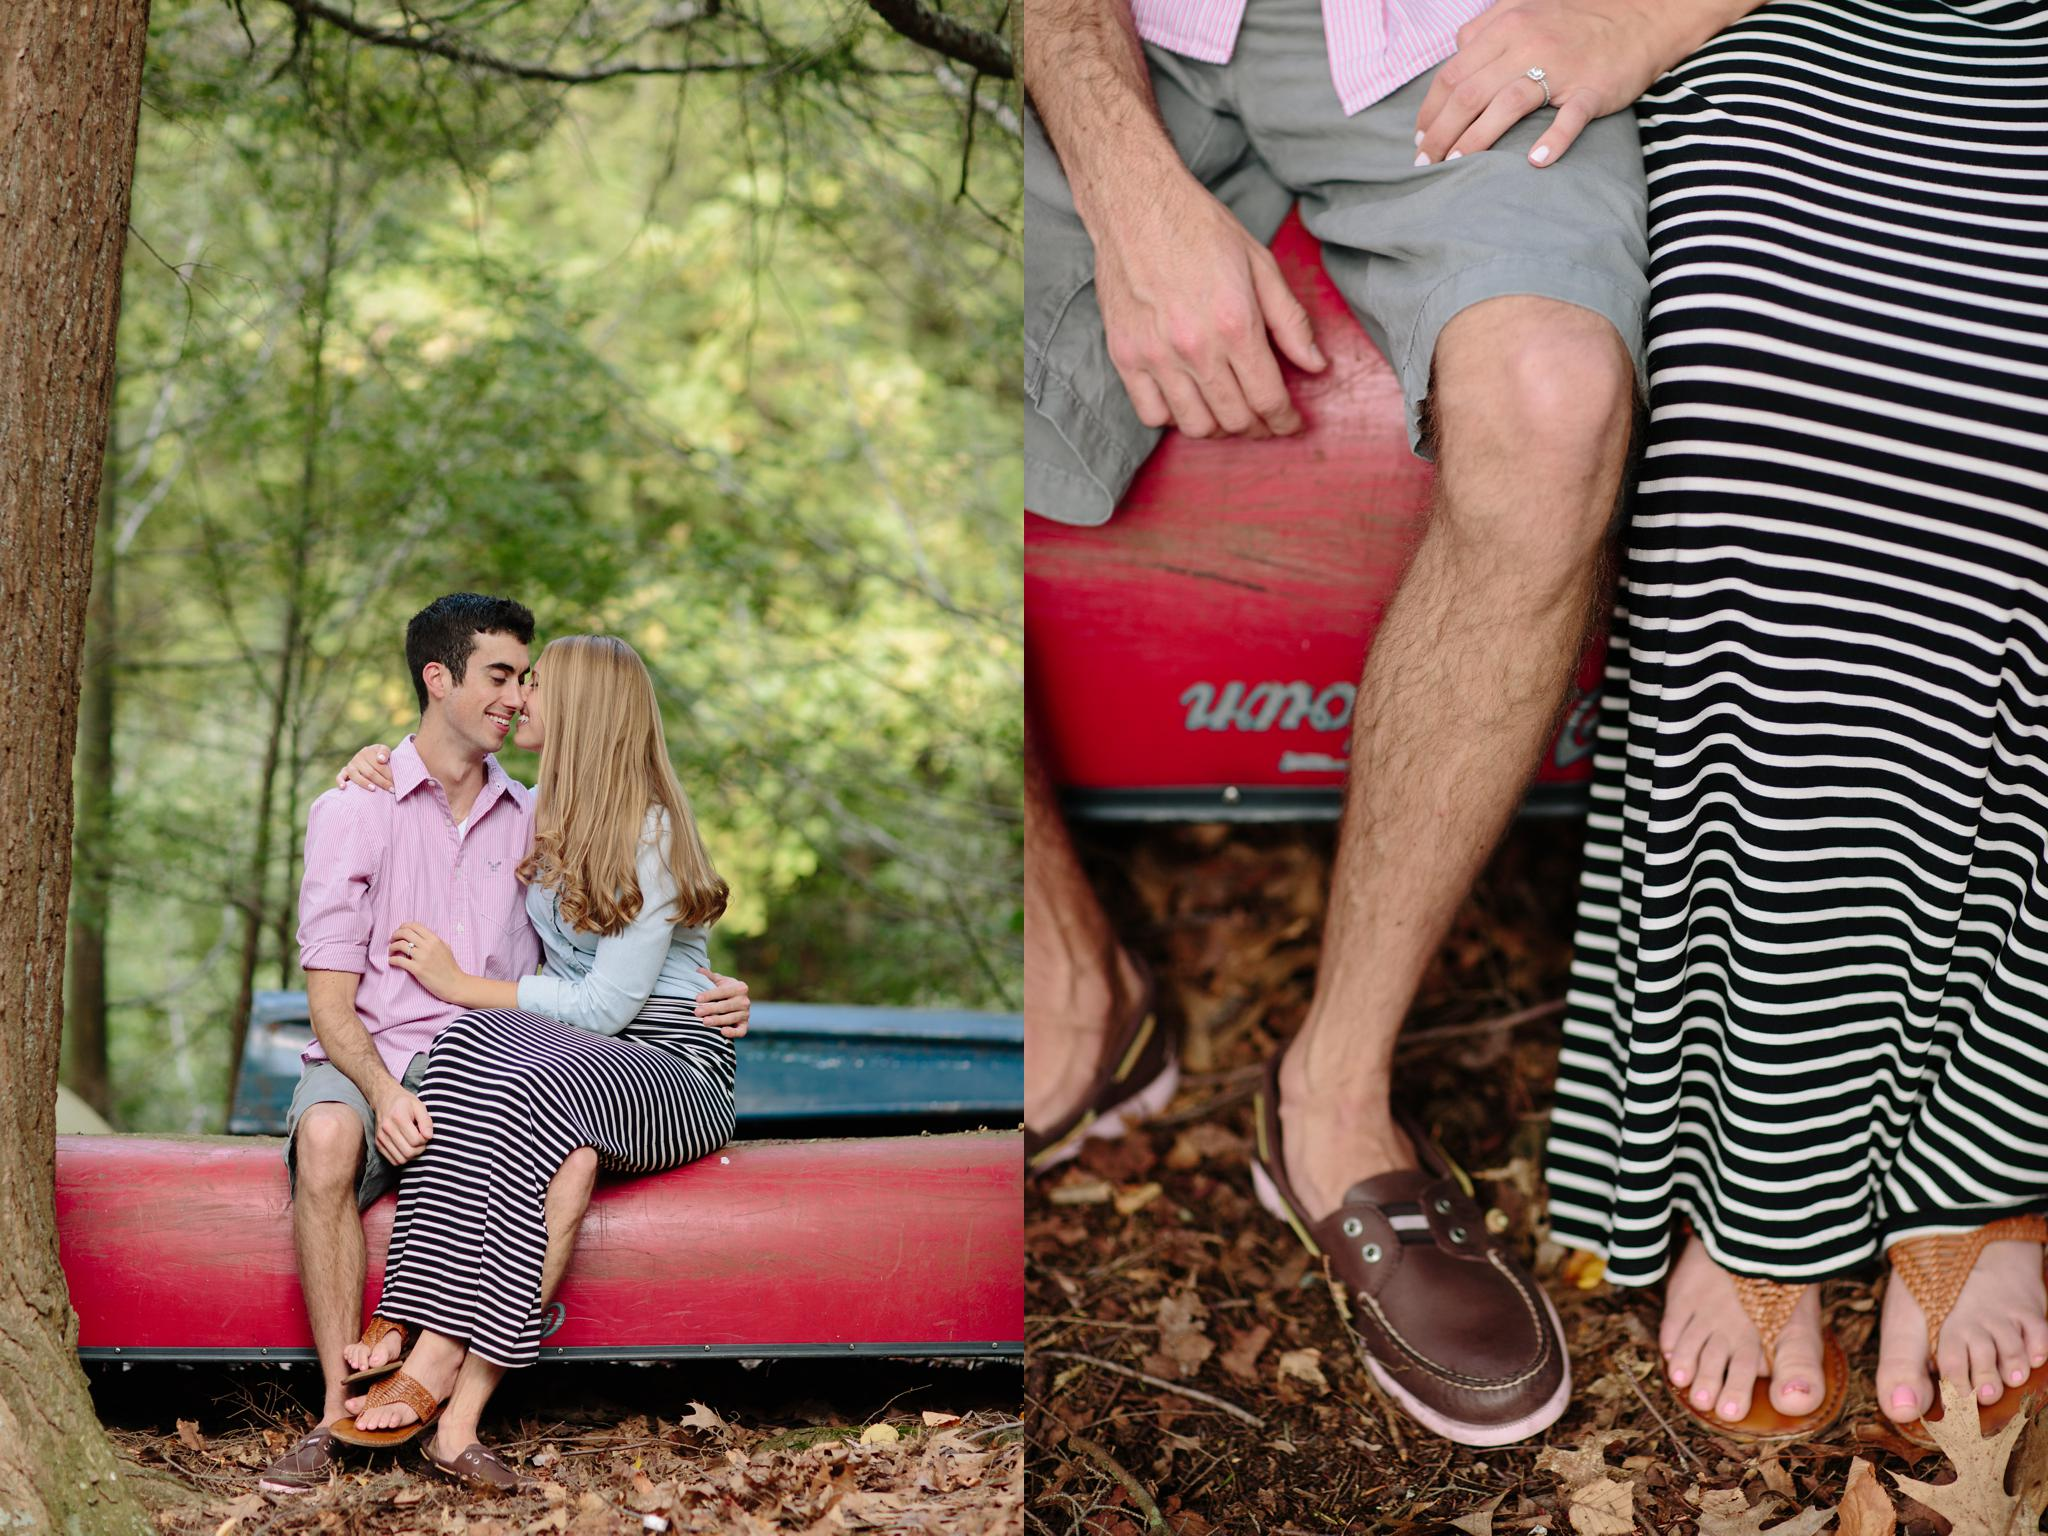 saddle_lake_engagement_session-50.jpg